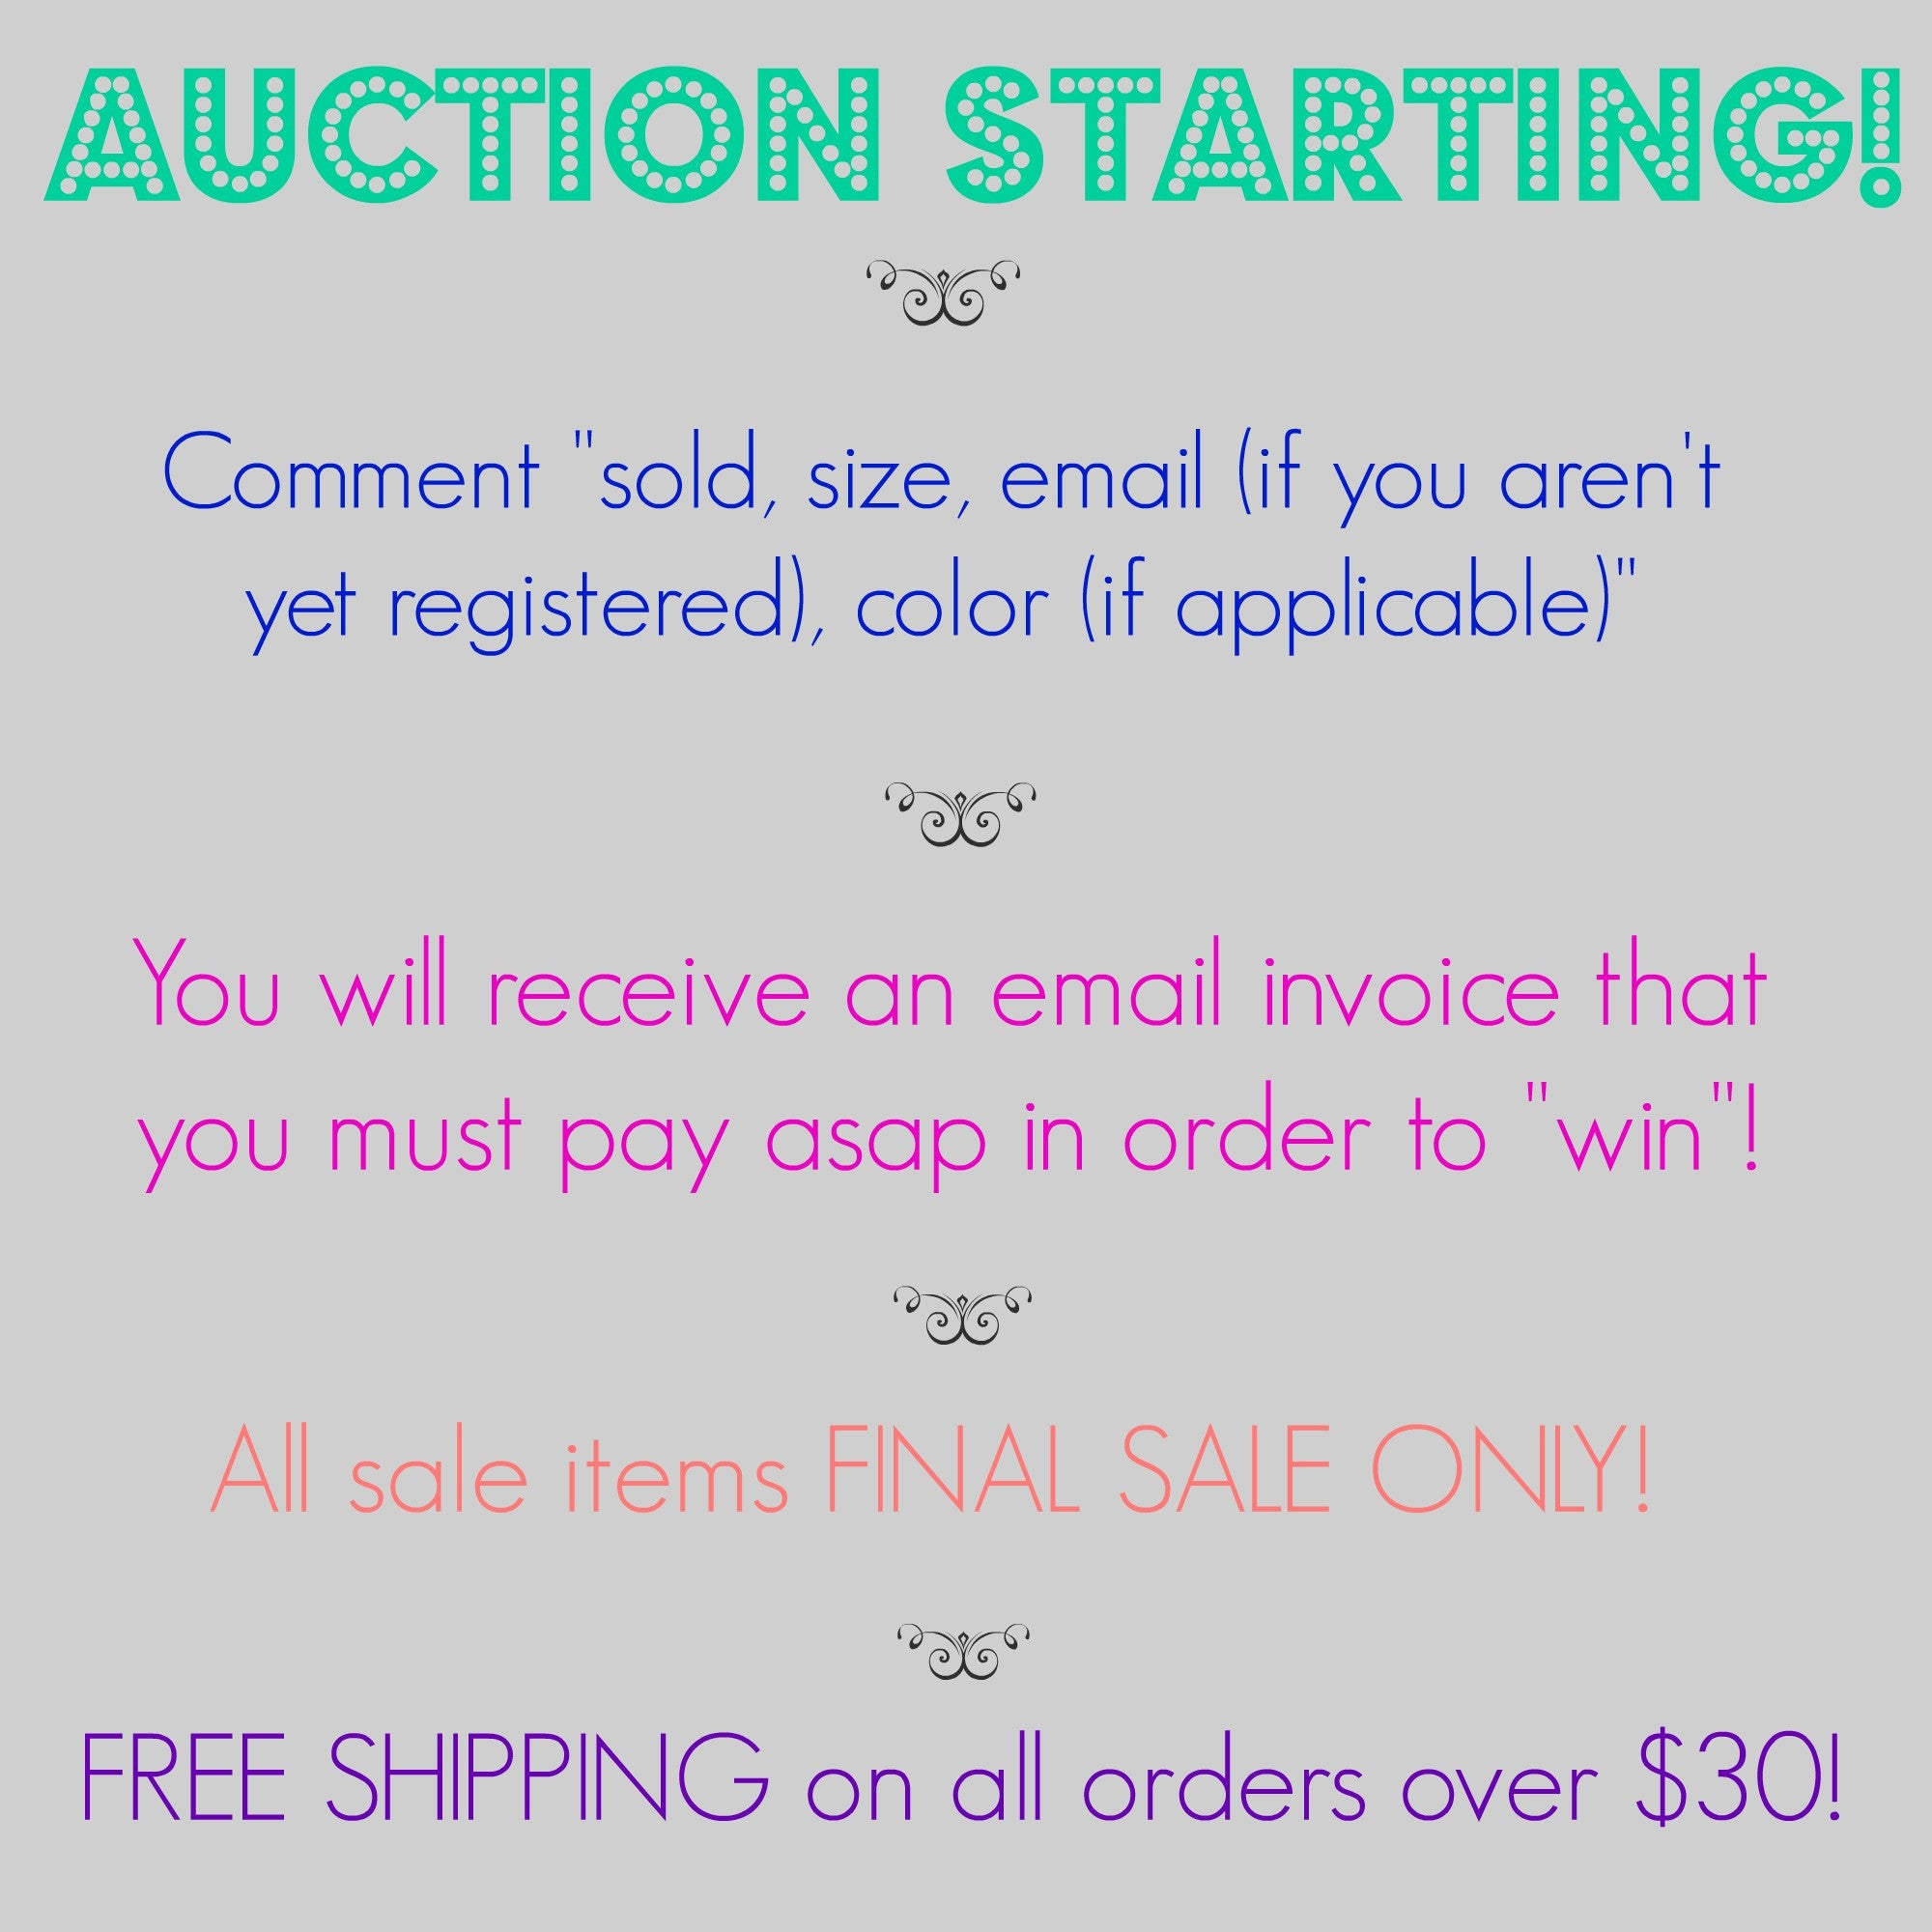 Auction Starting!